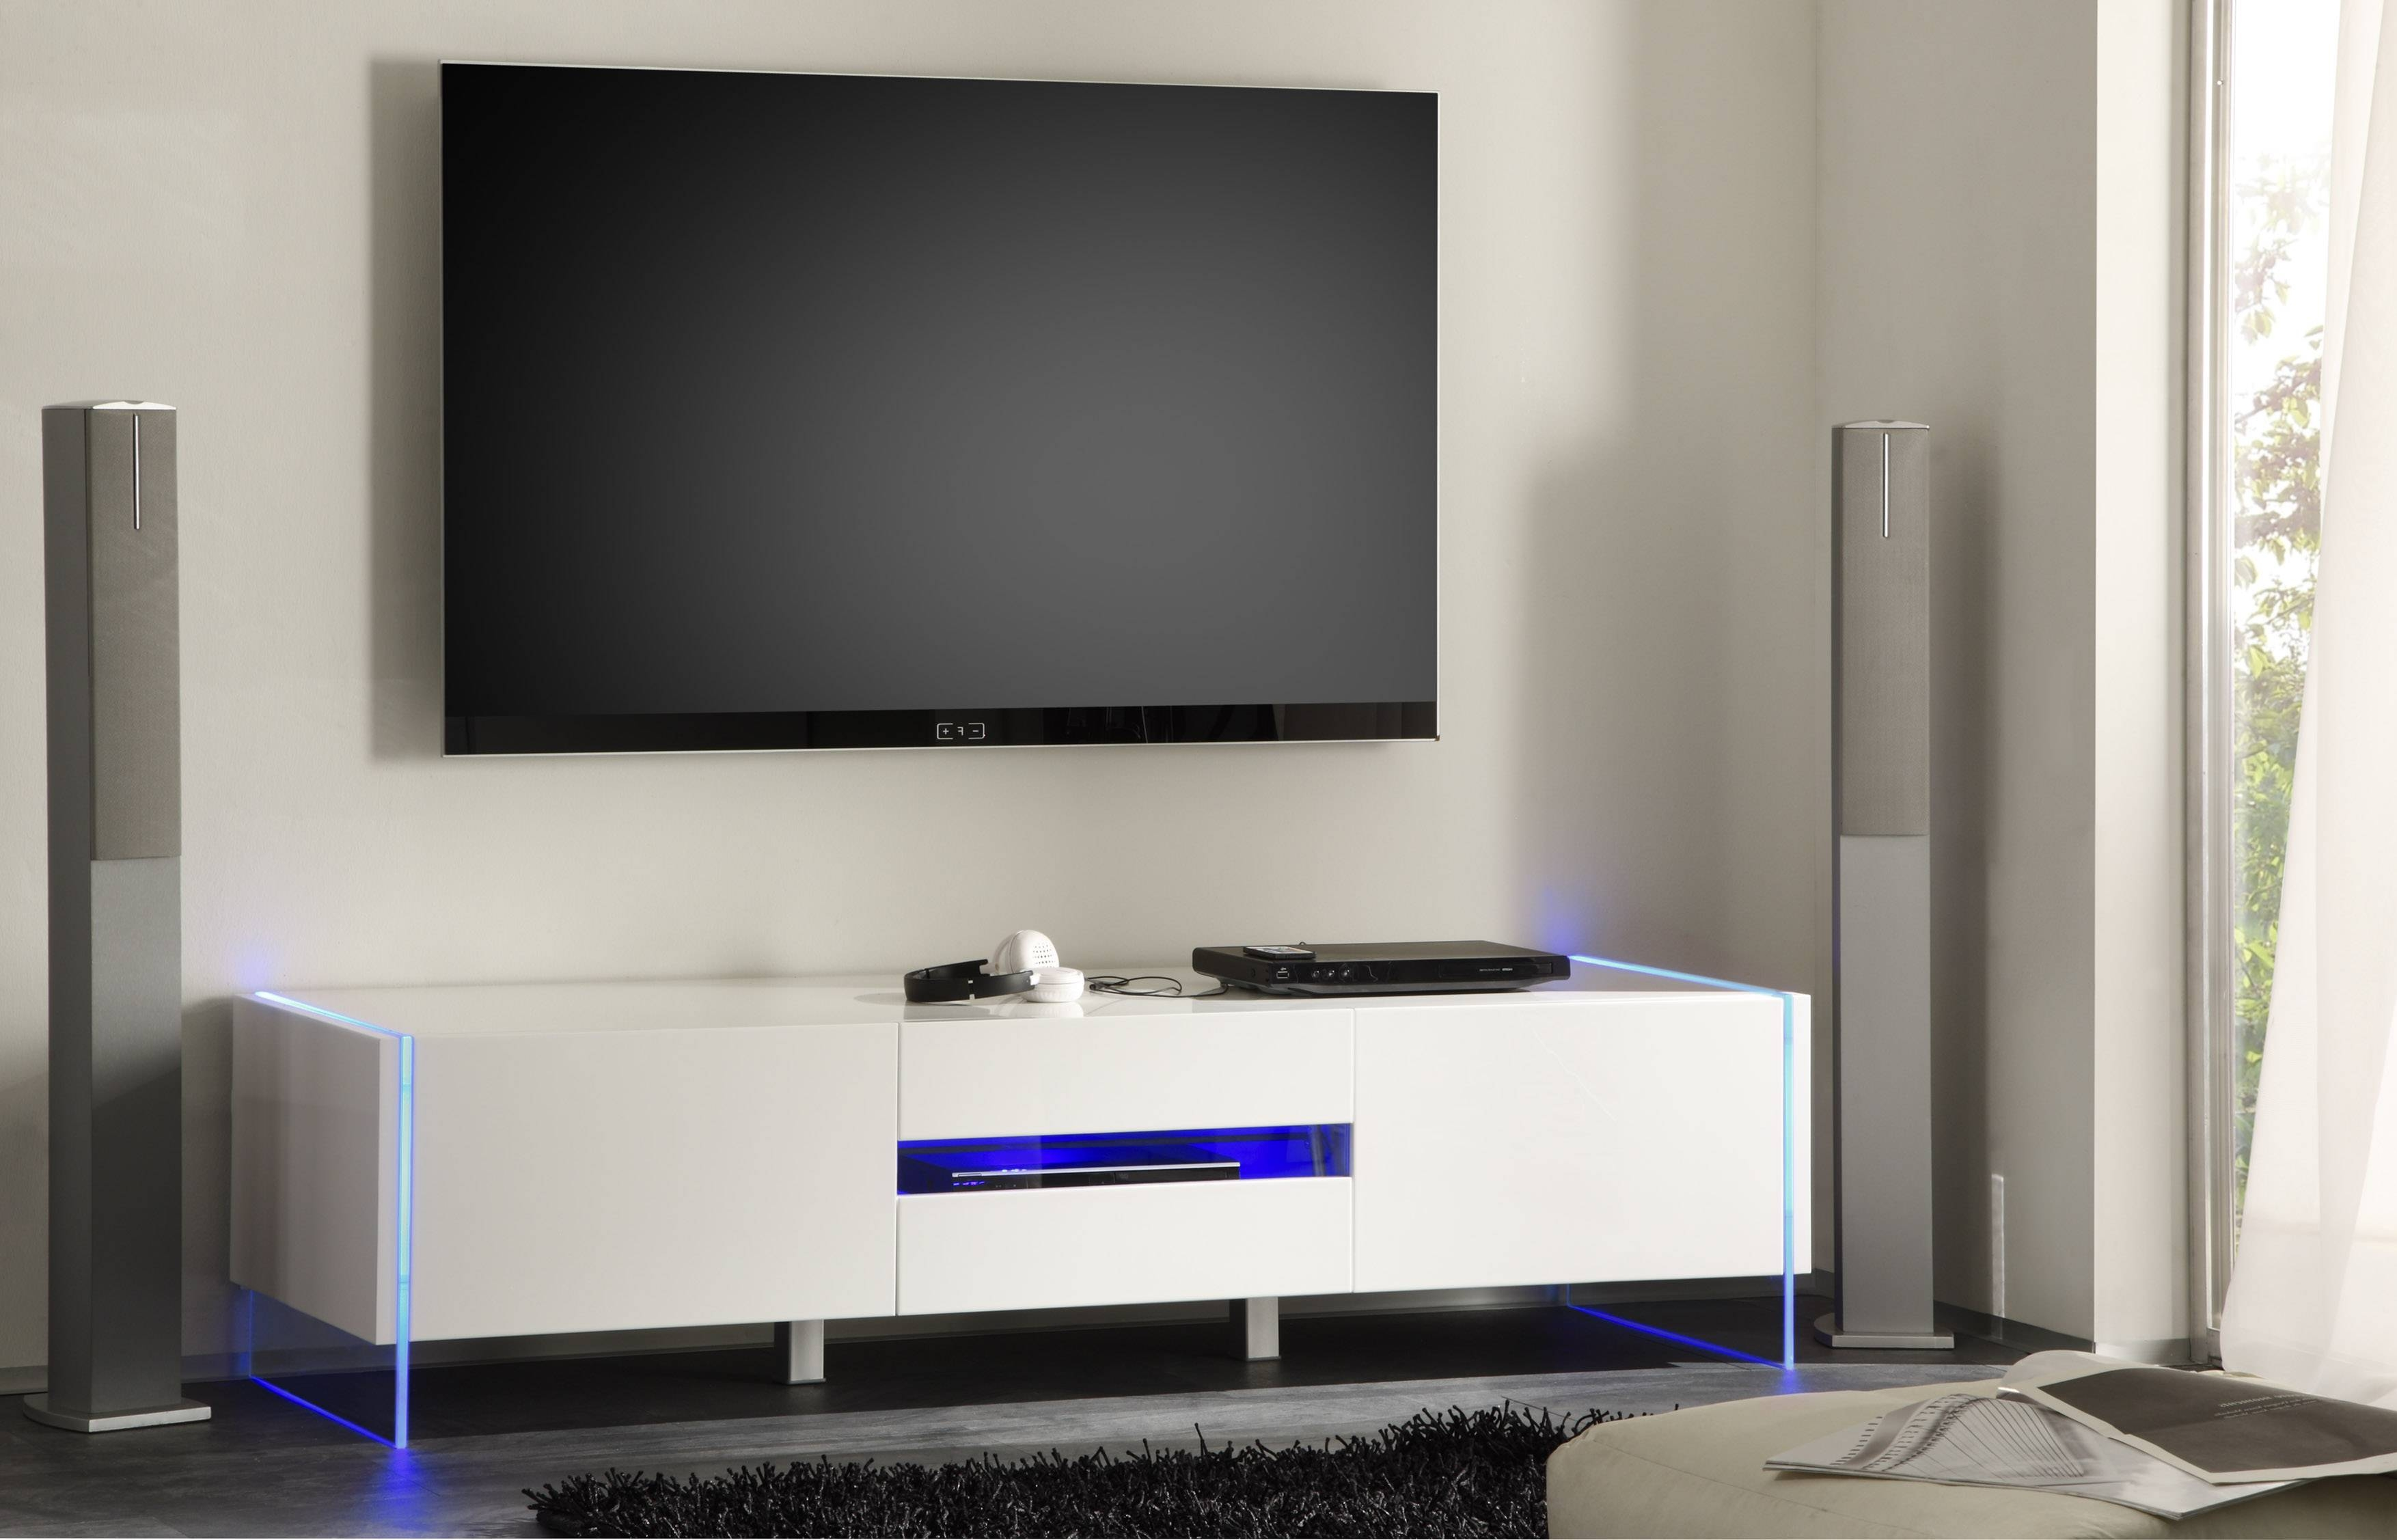 Chic Contemporary White Glossy Tv Stand Base With Led Seattle Regarding Modern Contemporary Tv Stands (View 10 of 15)